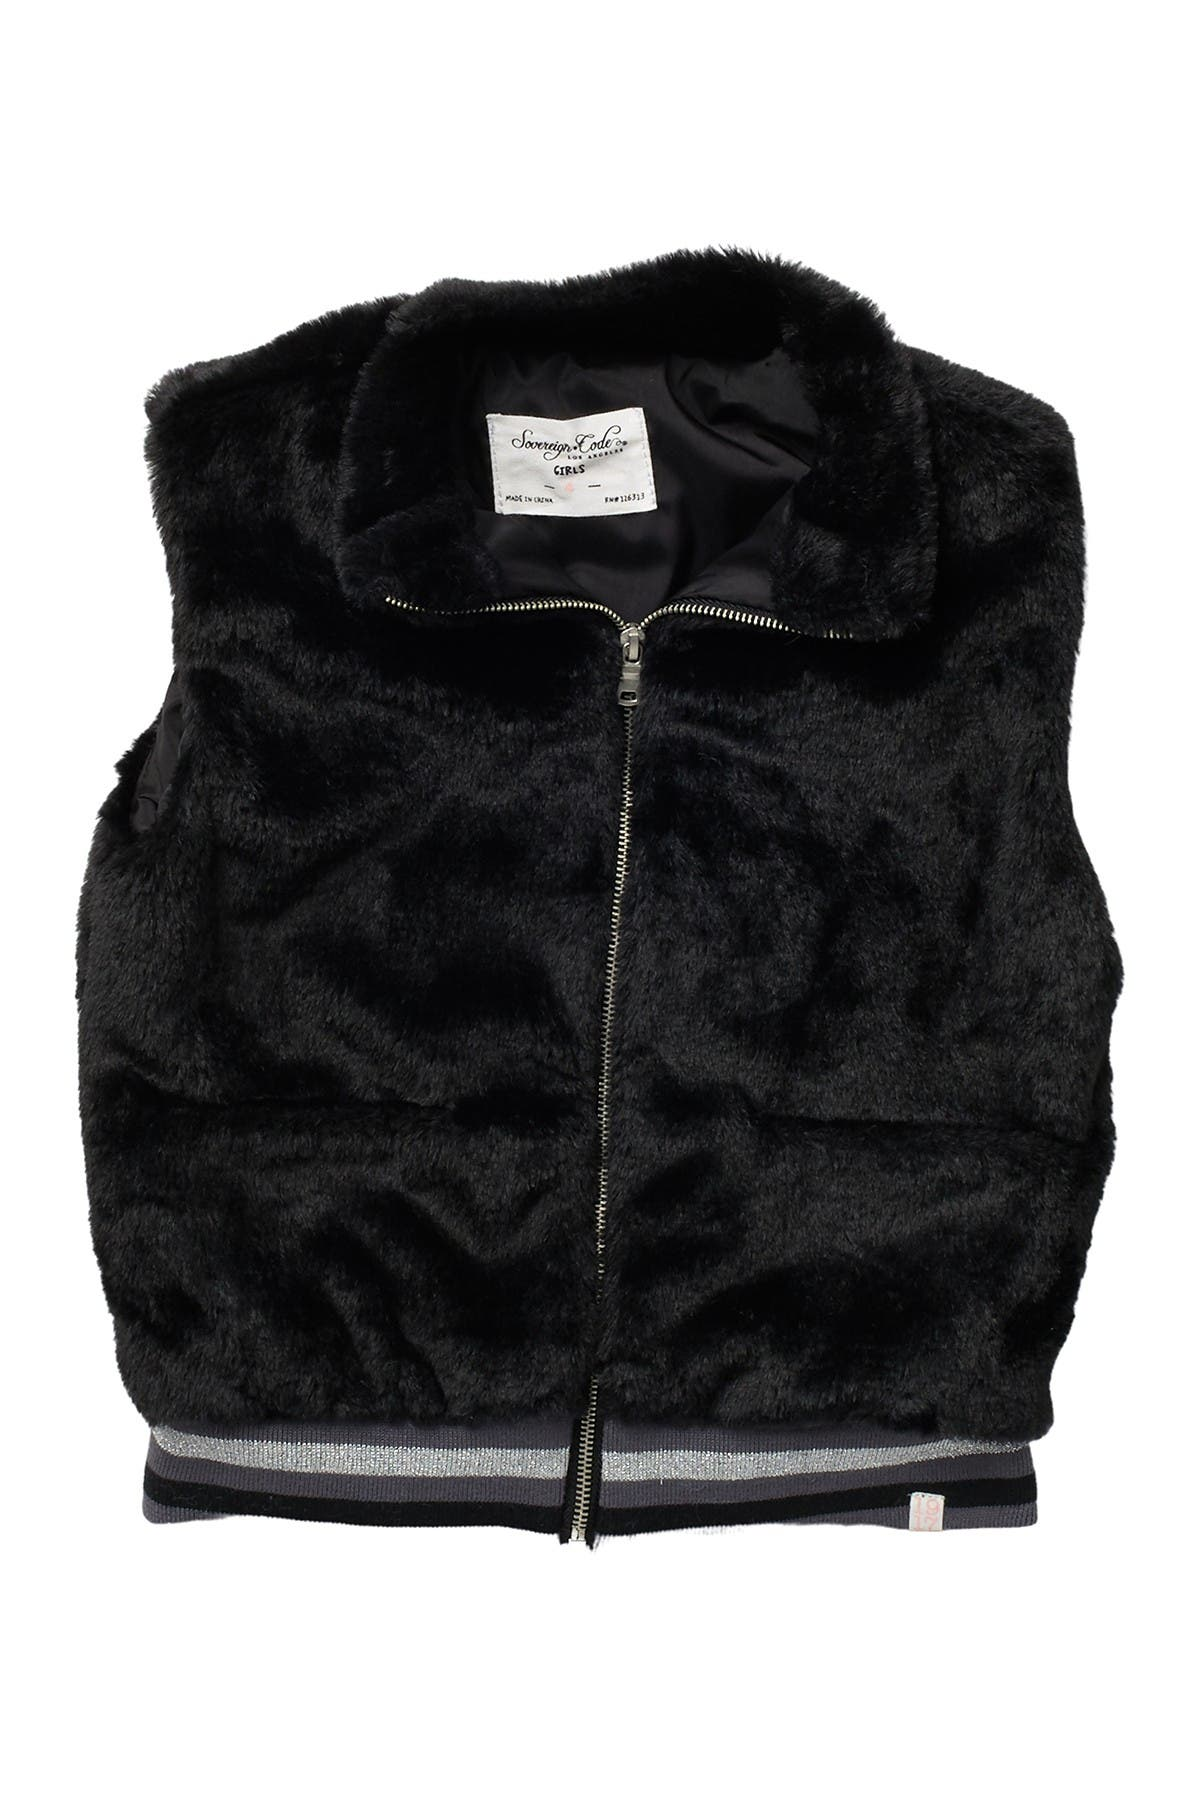 Image of Sovereign Code Hermine Faux Fur Vest